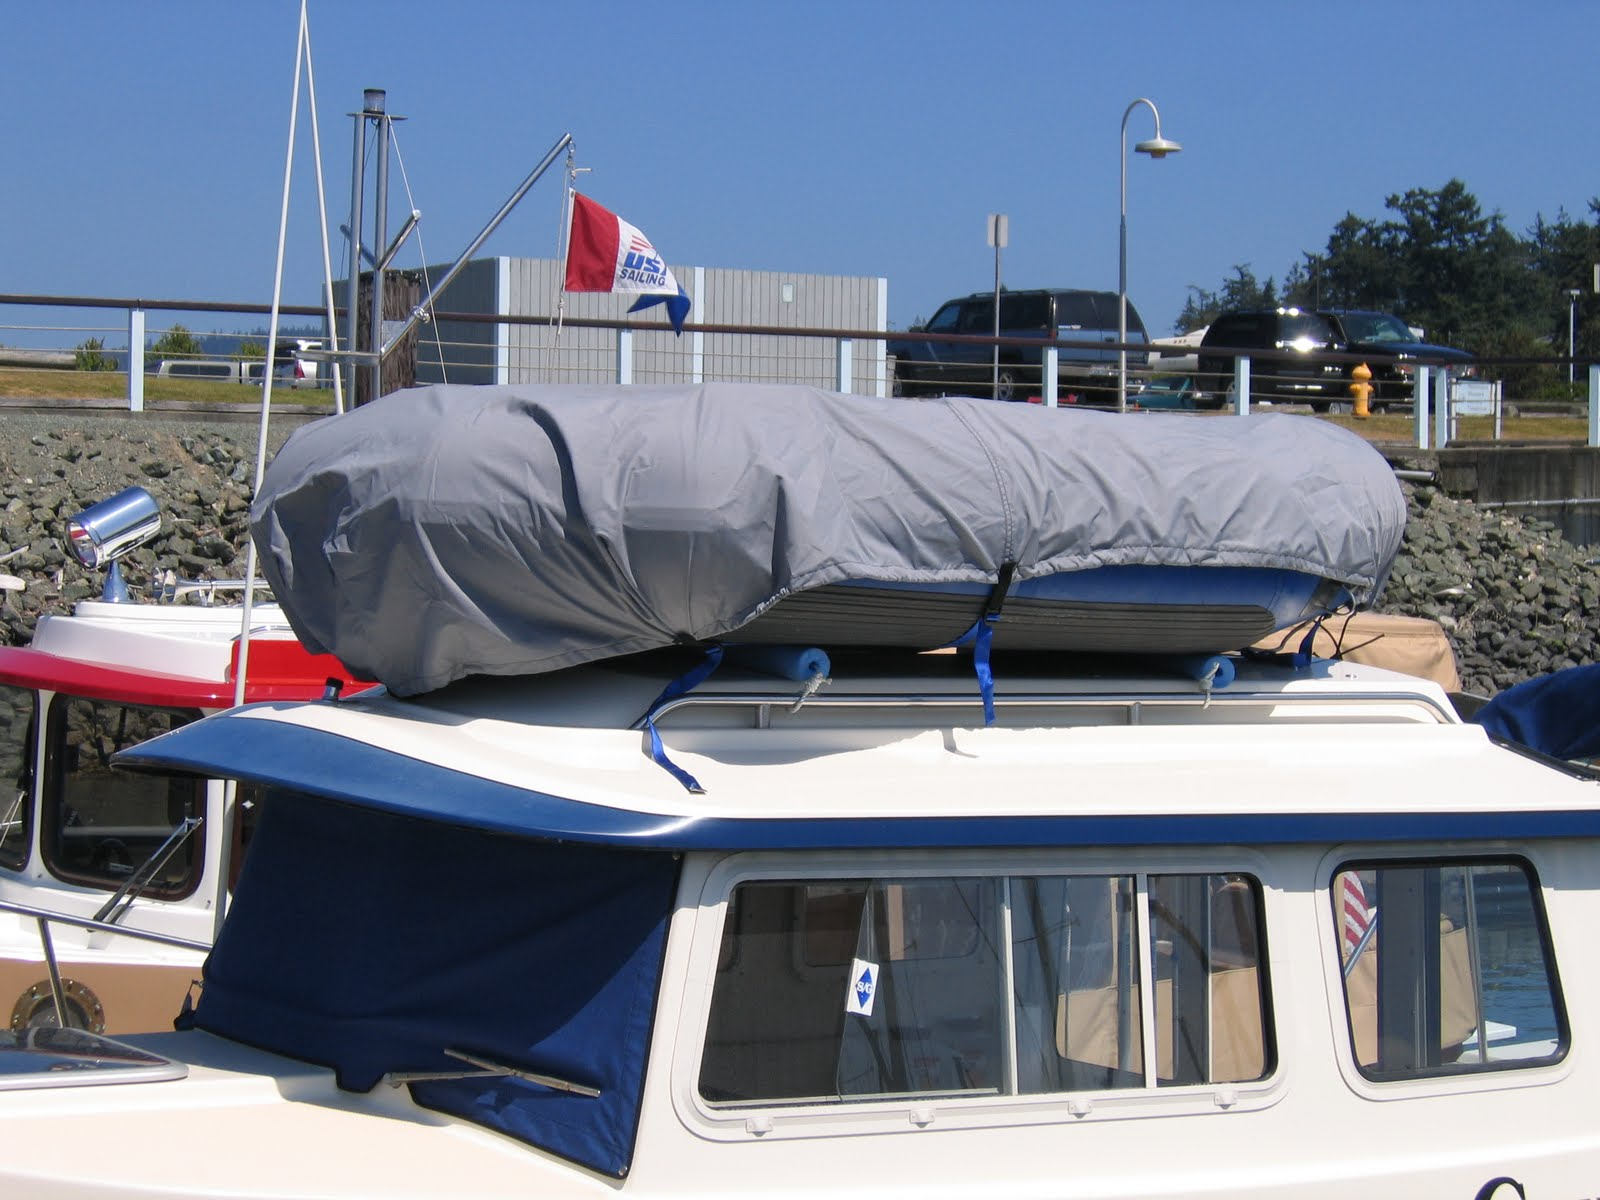 m/v Jenny G: Maintenance: A Low-Cost Dinghy Rack